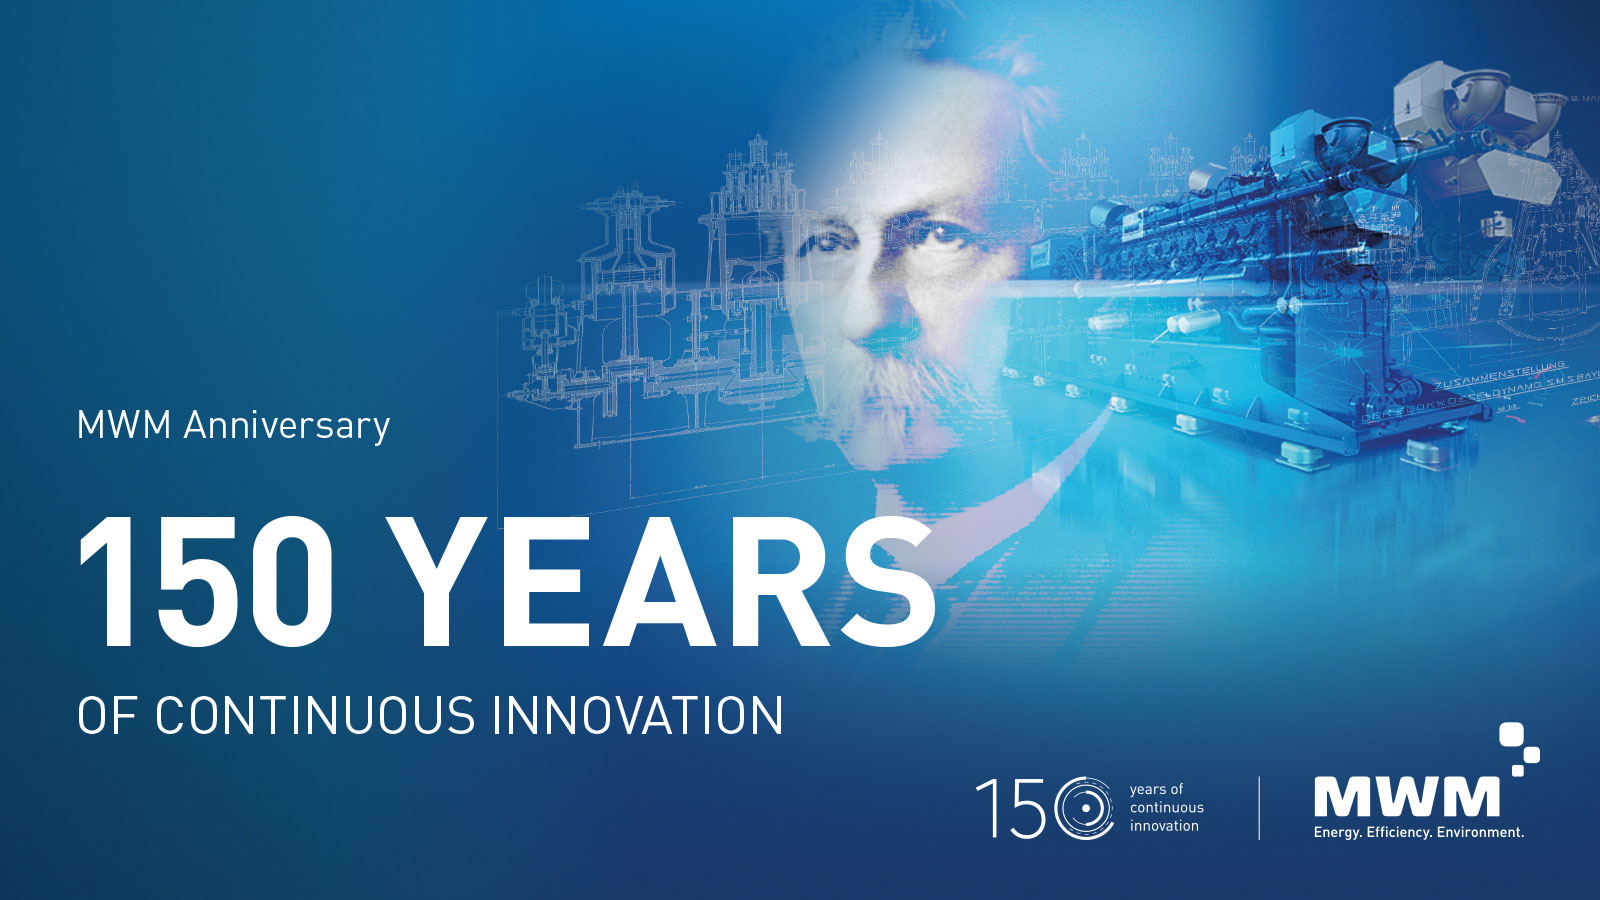 150 Years of Innovation and Progress in Distributed Energy Generation with Highly Efficient Gas Engines